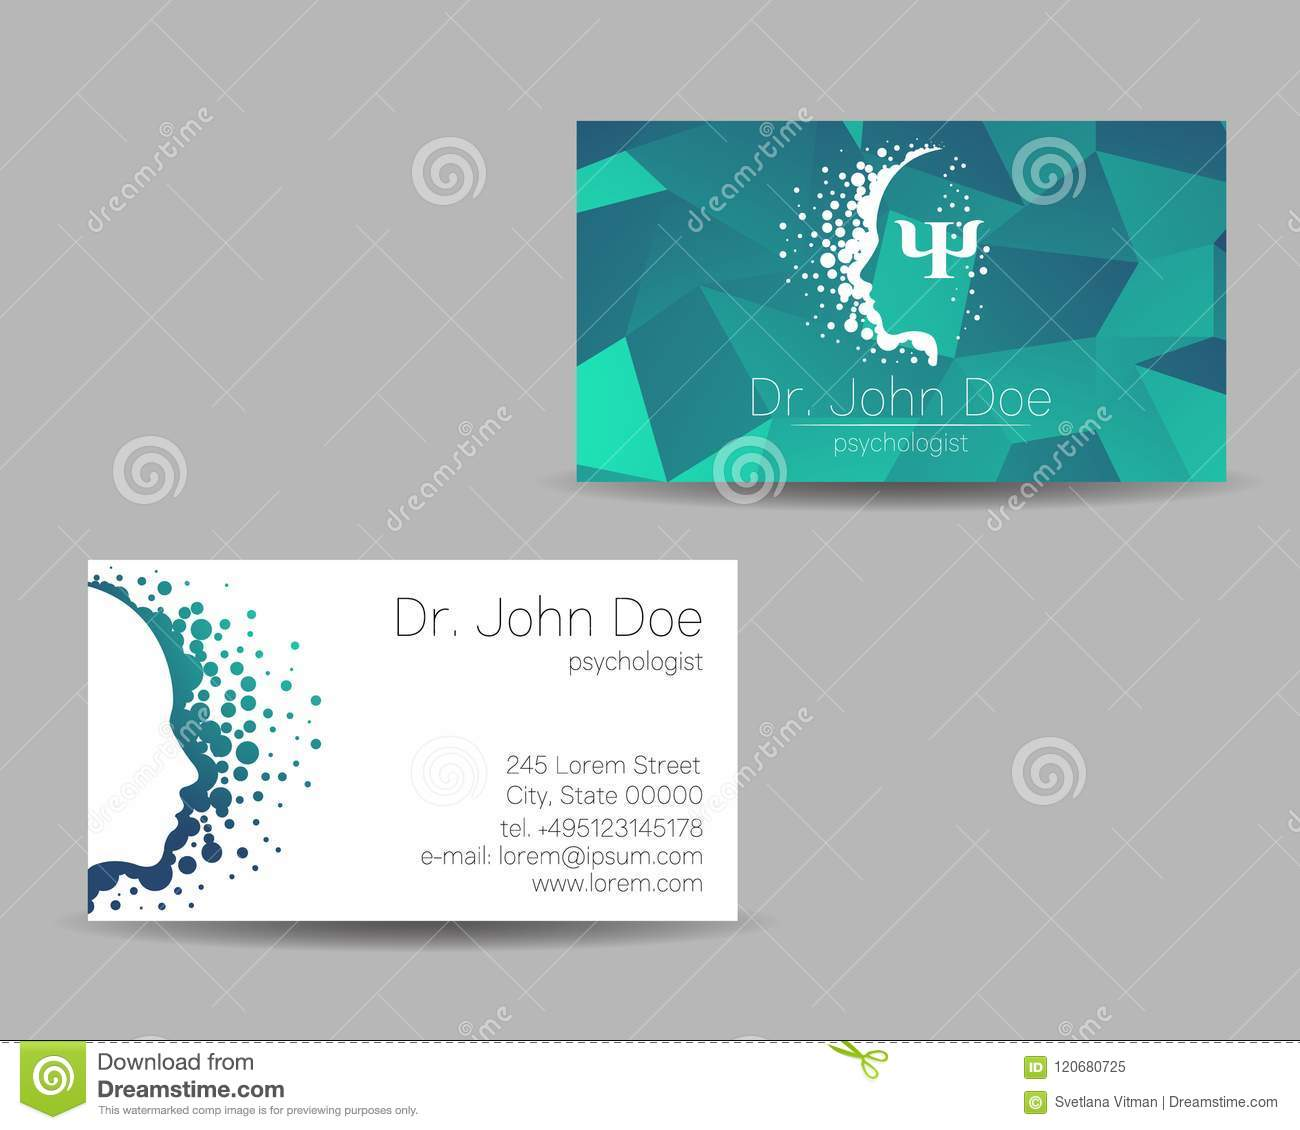 Psychology Vector Visit Card Modern Sign Creative Style Design Concept Brand Company Green Color Isolated On Grey Stock Vector Illustration Of Creative Name 120680725